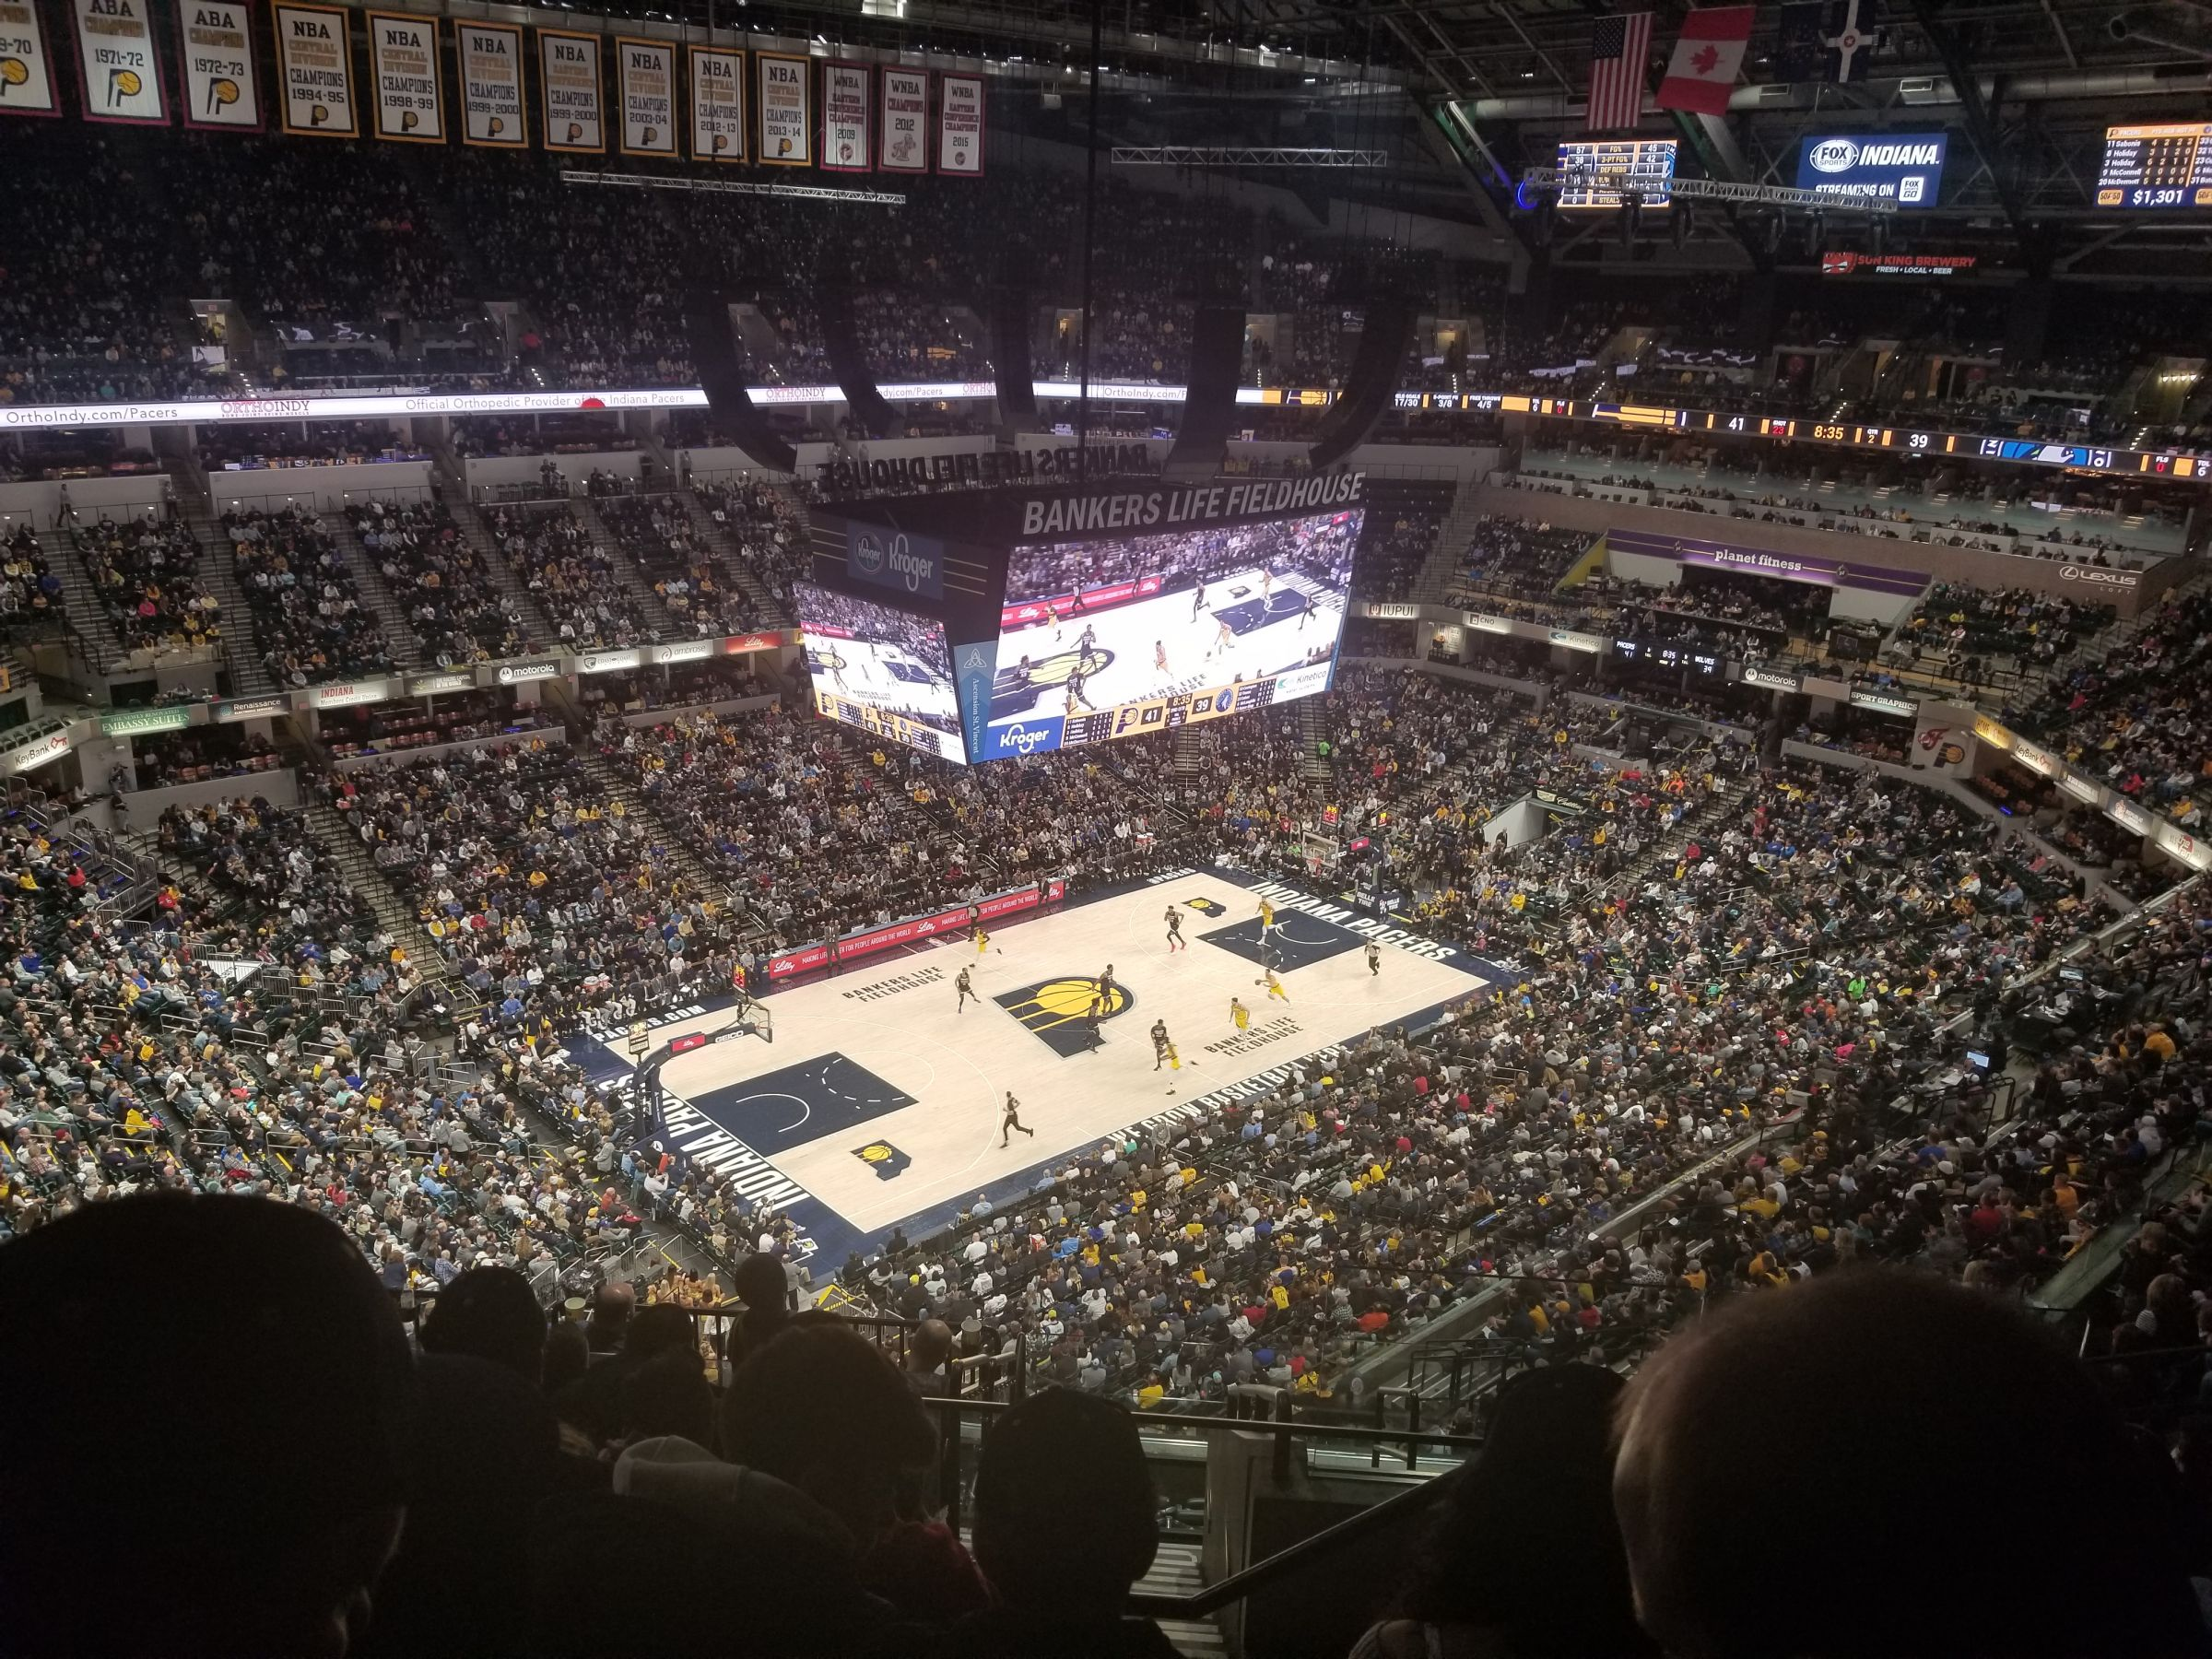 Seat View for Bankers Life Fieldhouse Section 228, Row 11, Seat 2